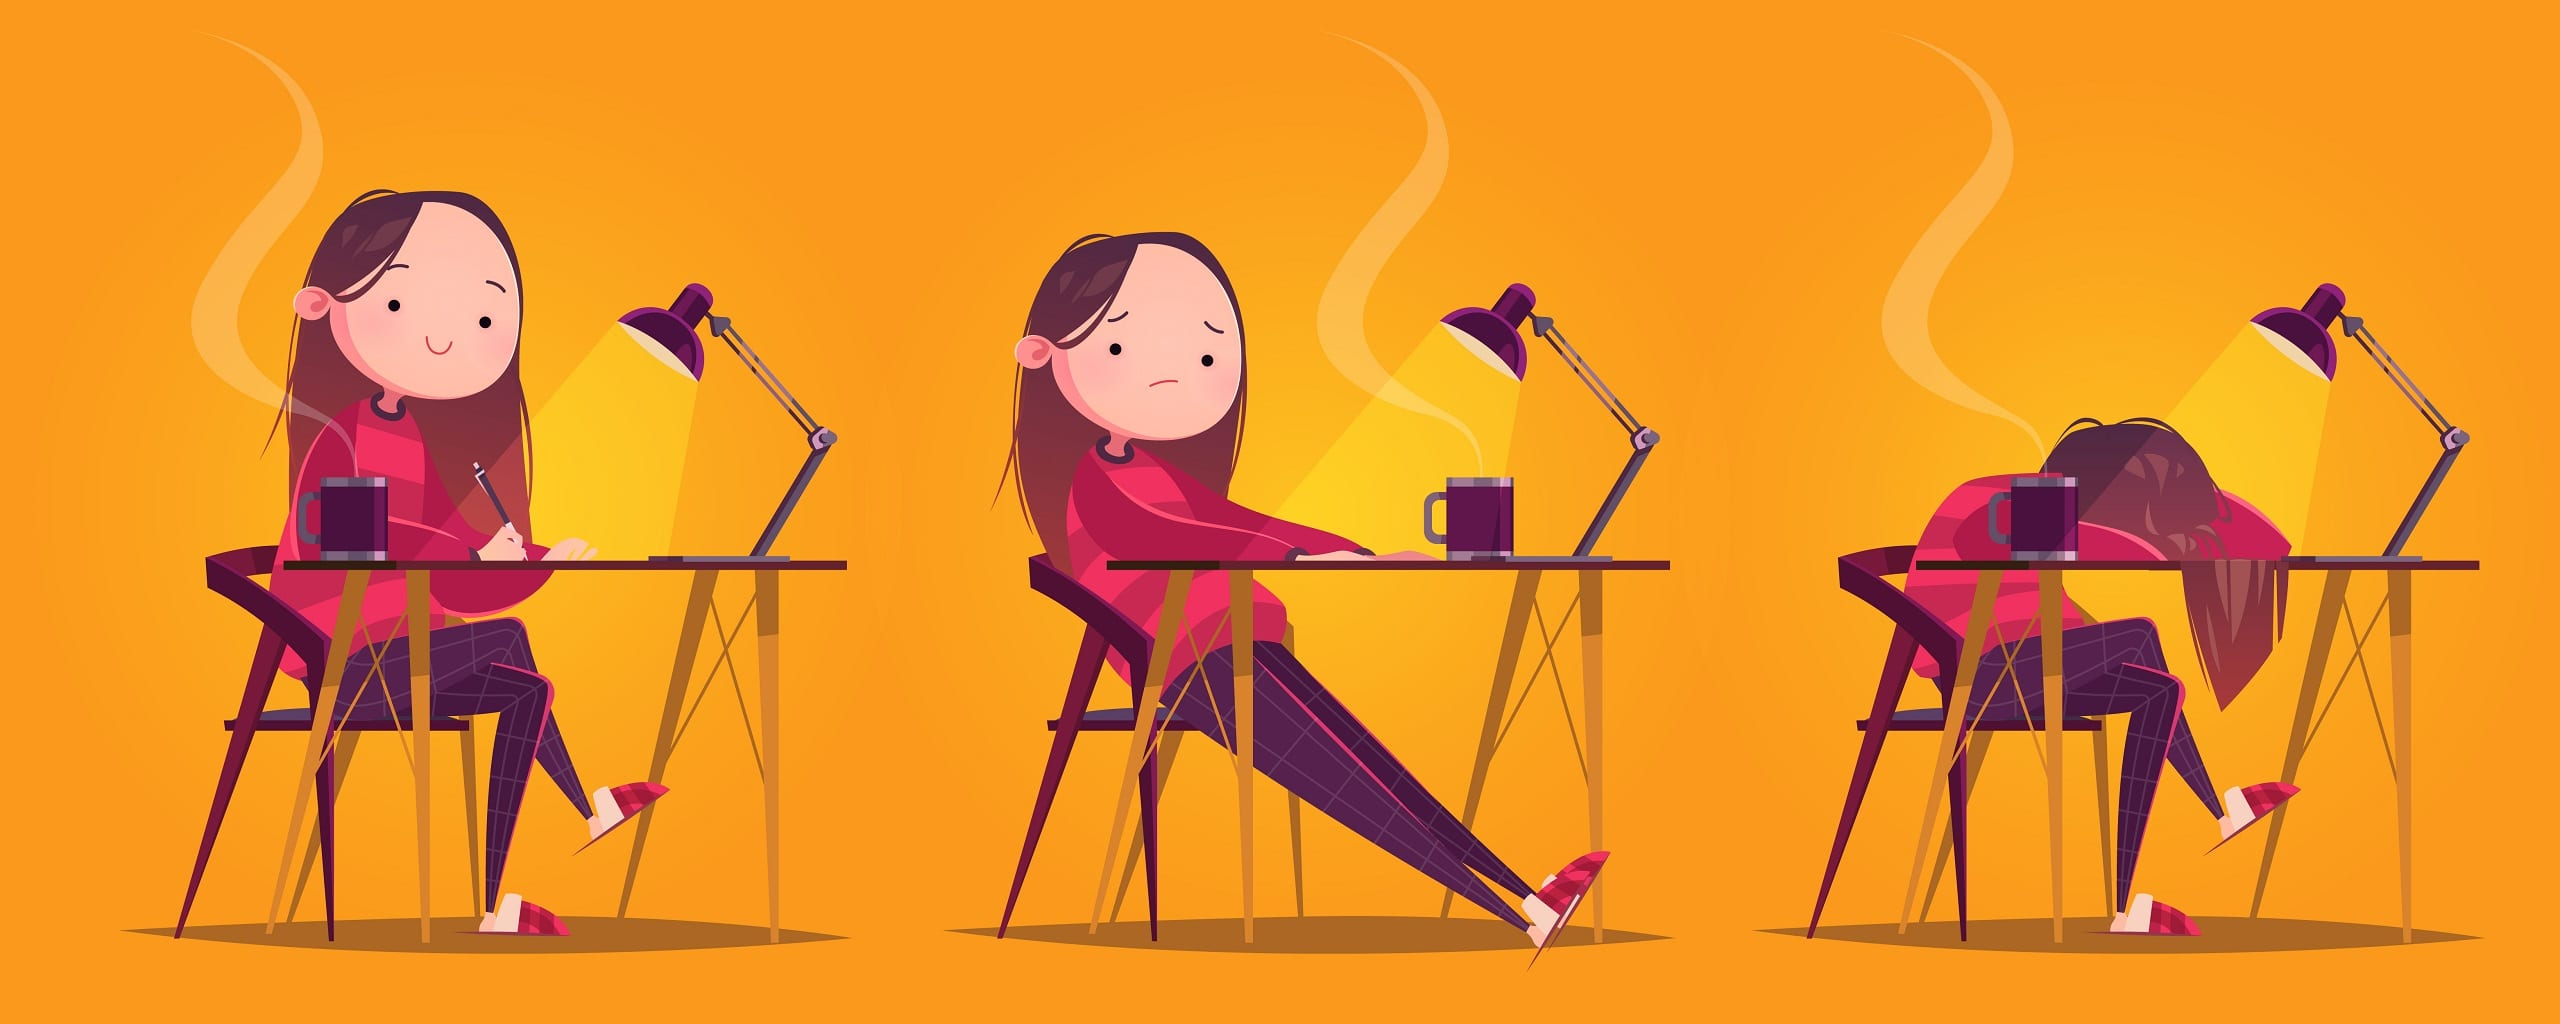 Cute cartoon character working girl at the table with a mug and lamp.